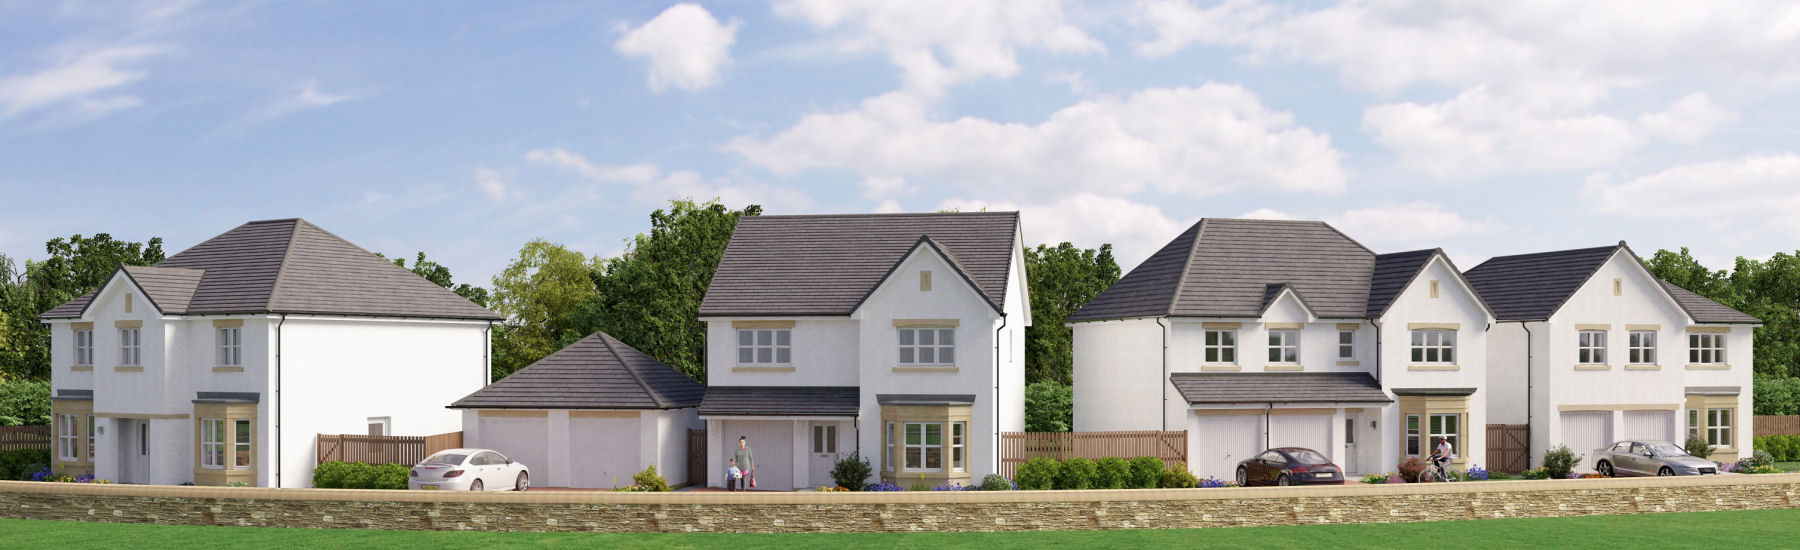 New Build Homes Glasgow 2 5 Bedroom Homes For Sale In